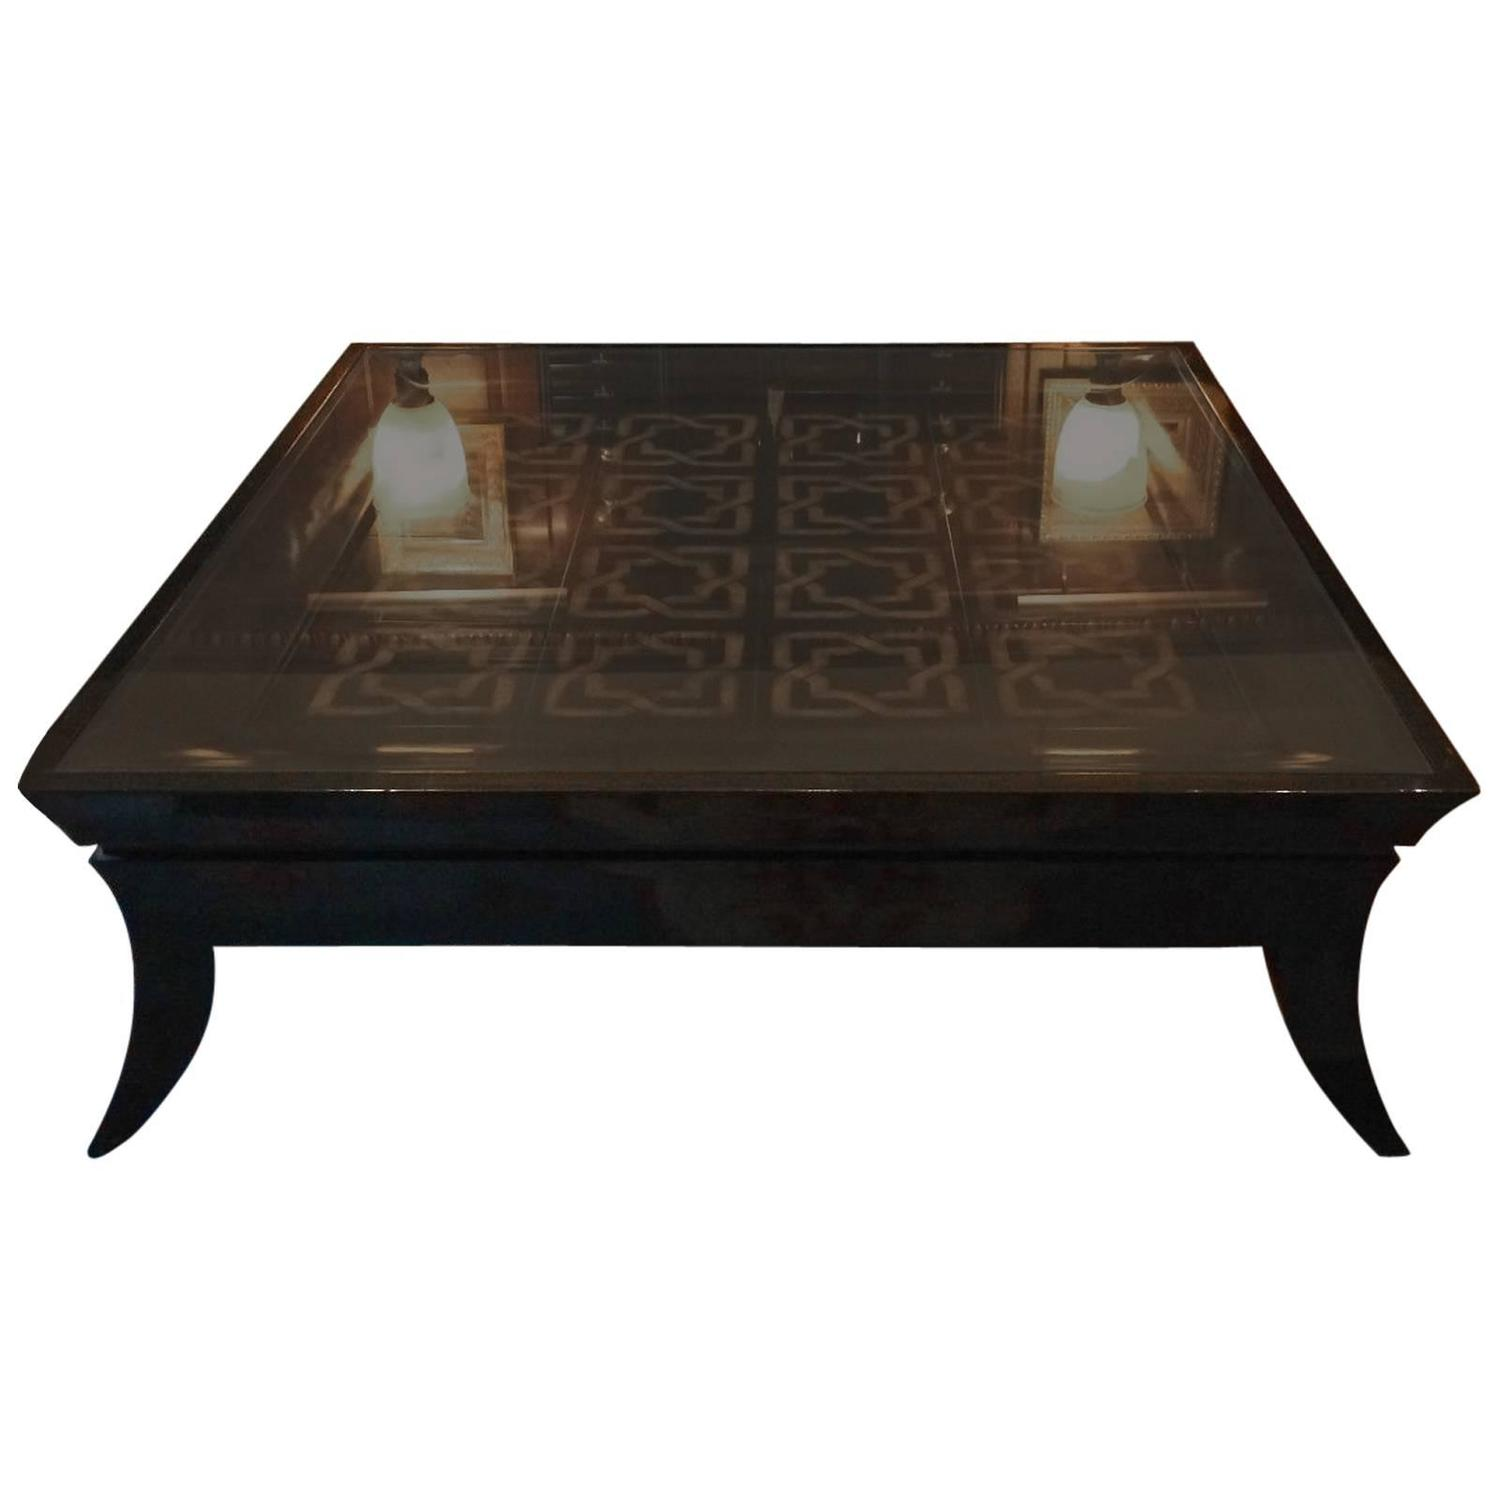 Large coffee table glass topped tiled modern at 1stdibs Coffee tables glass